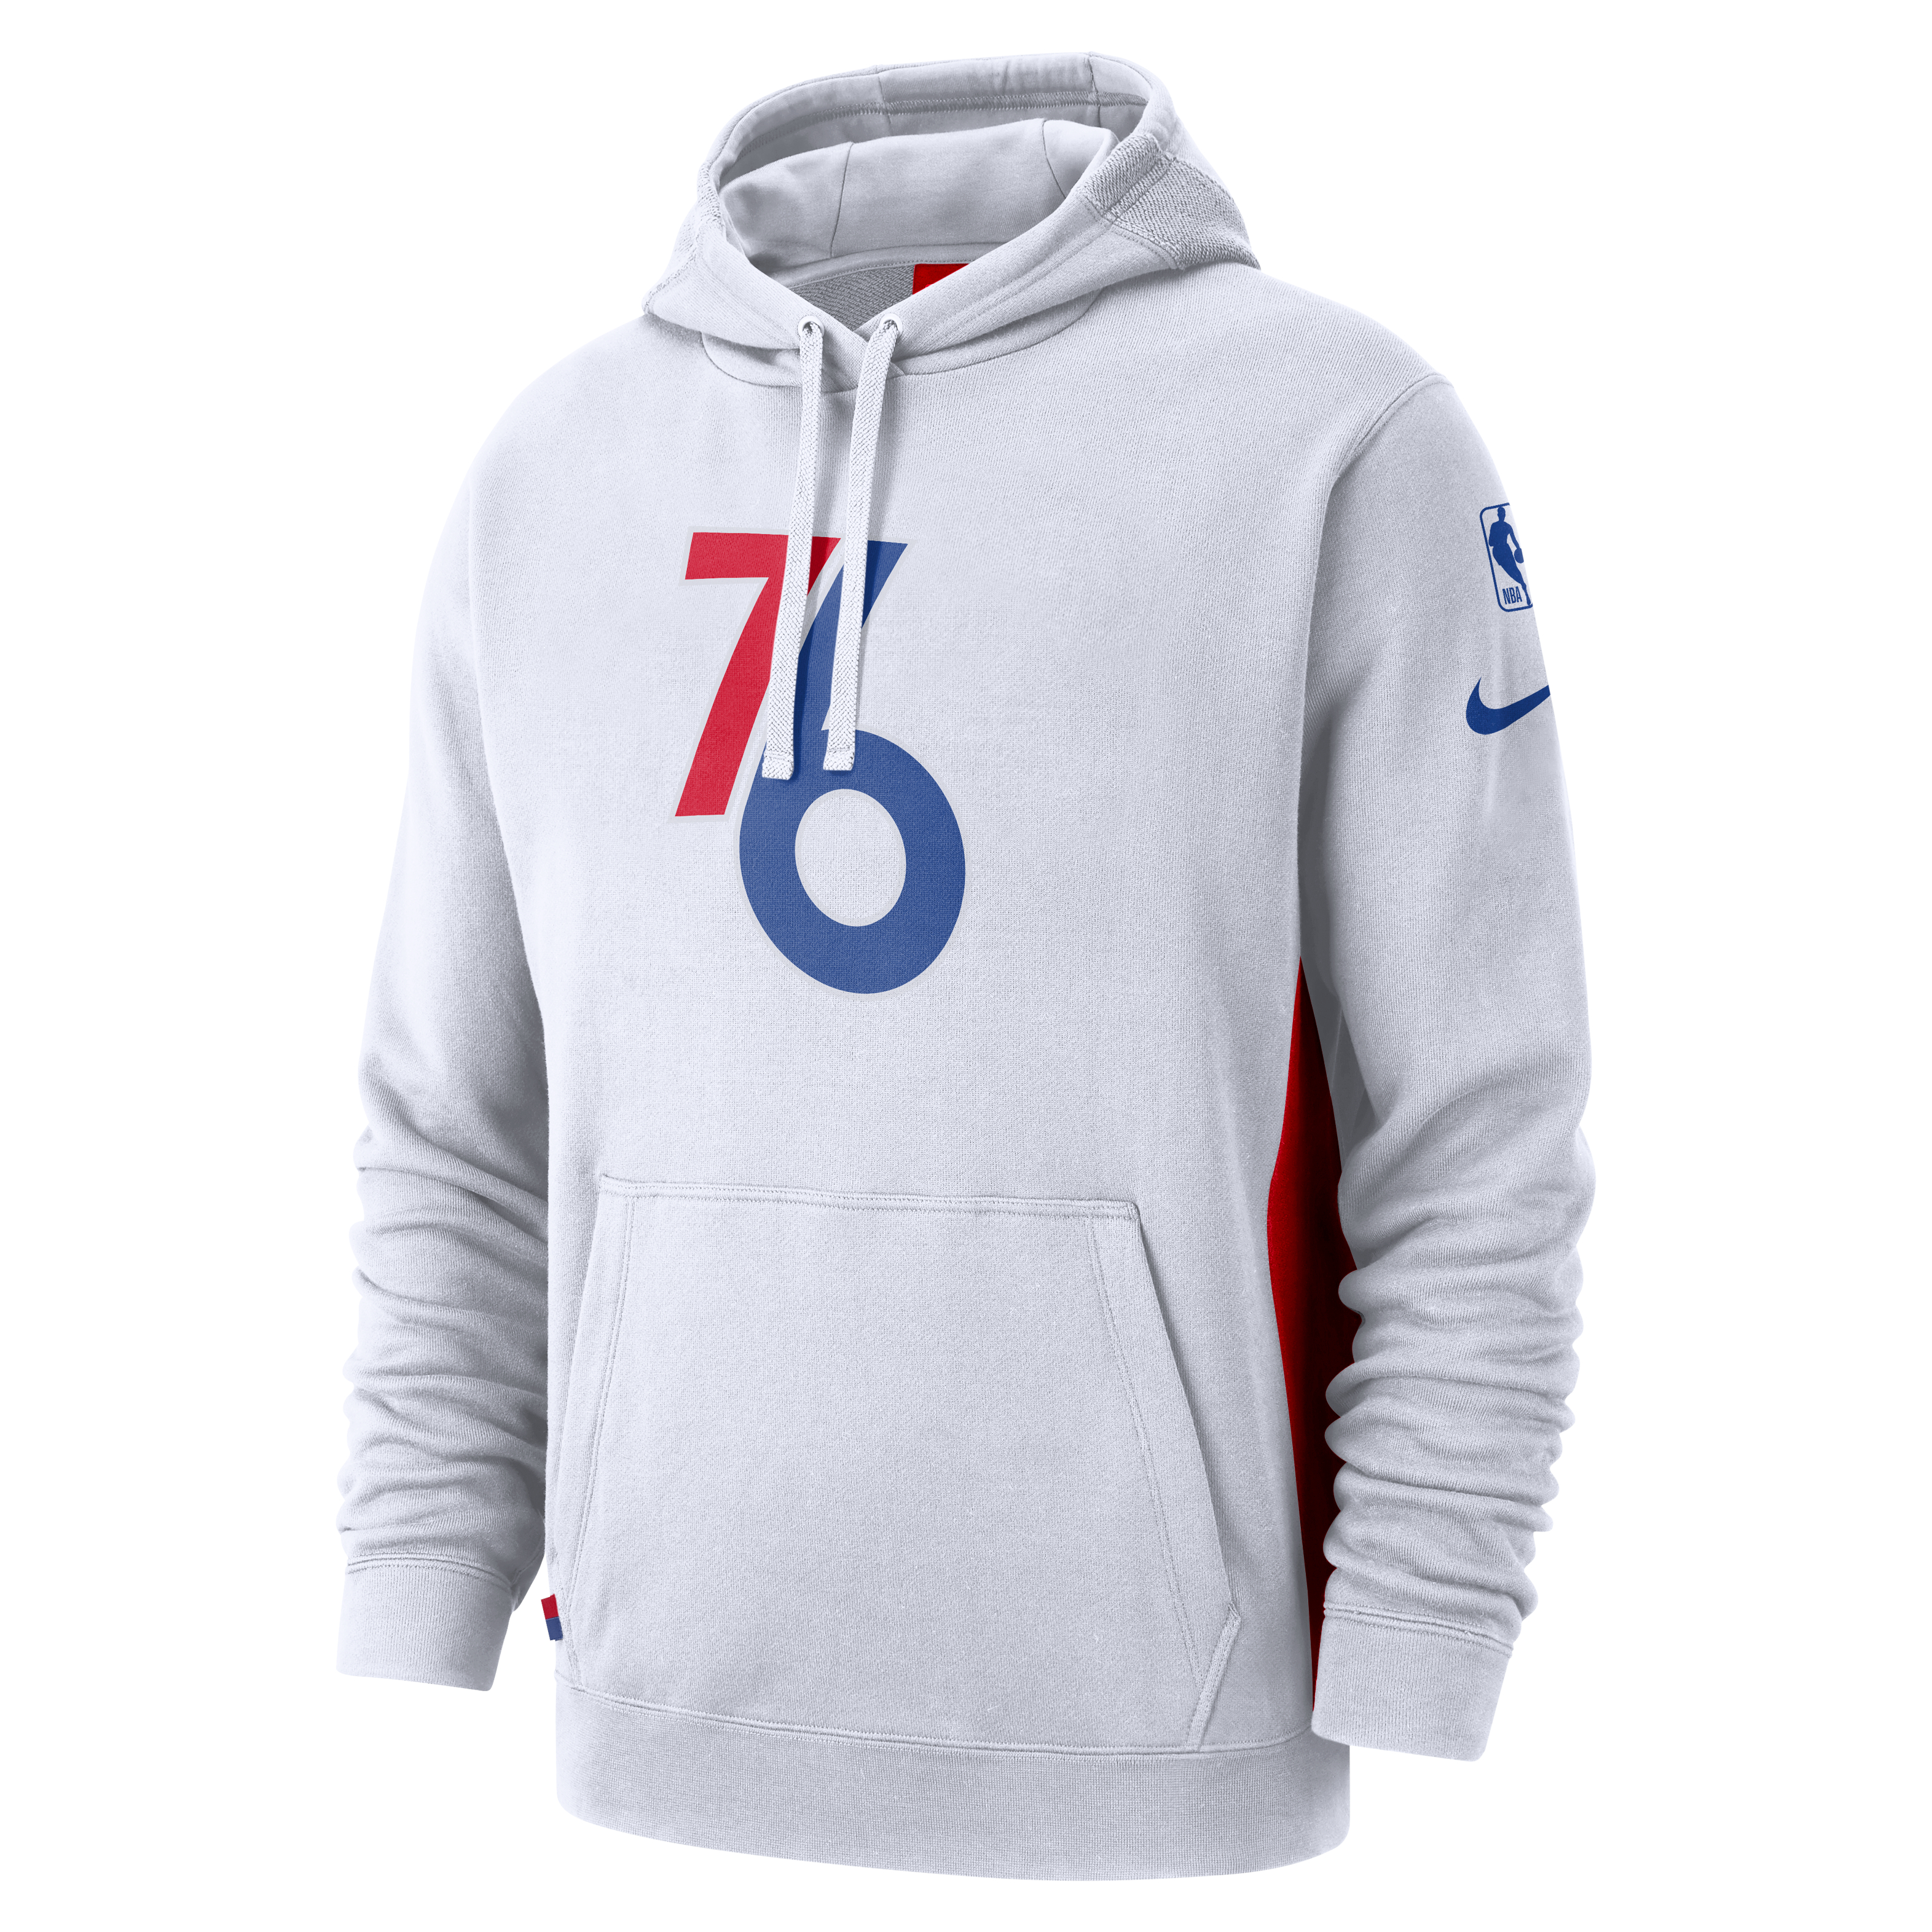 Philadelphia 76ers Men s Striped Lacer Hoodie by  47 Brand - Wells Fargo  Center - Official Online Store ad7e4d144